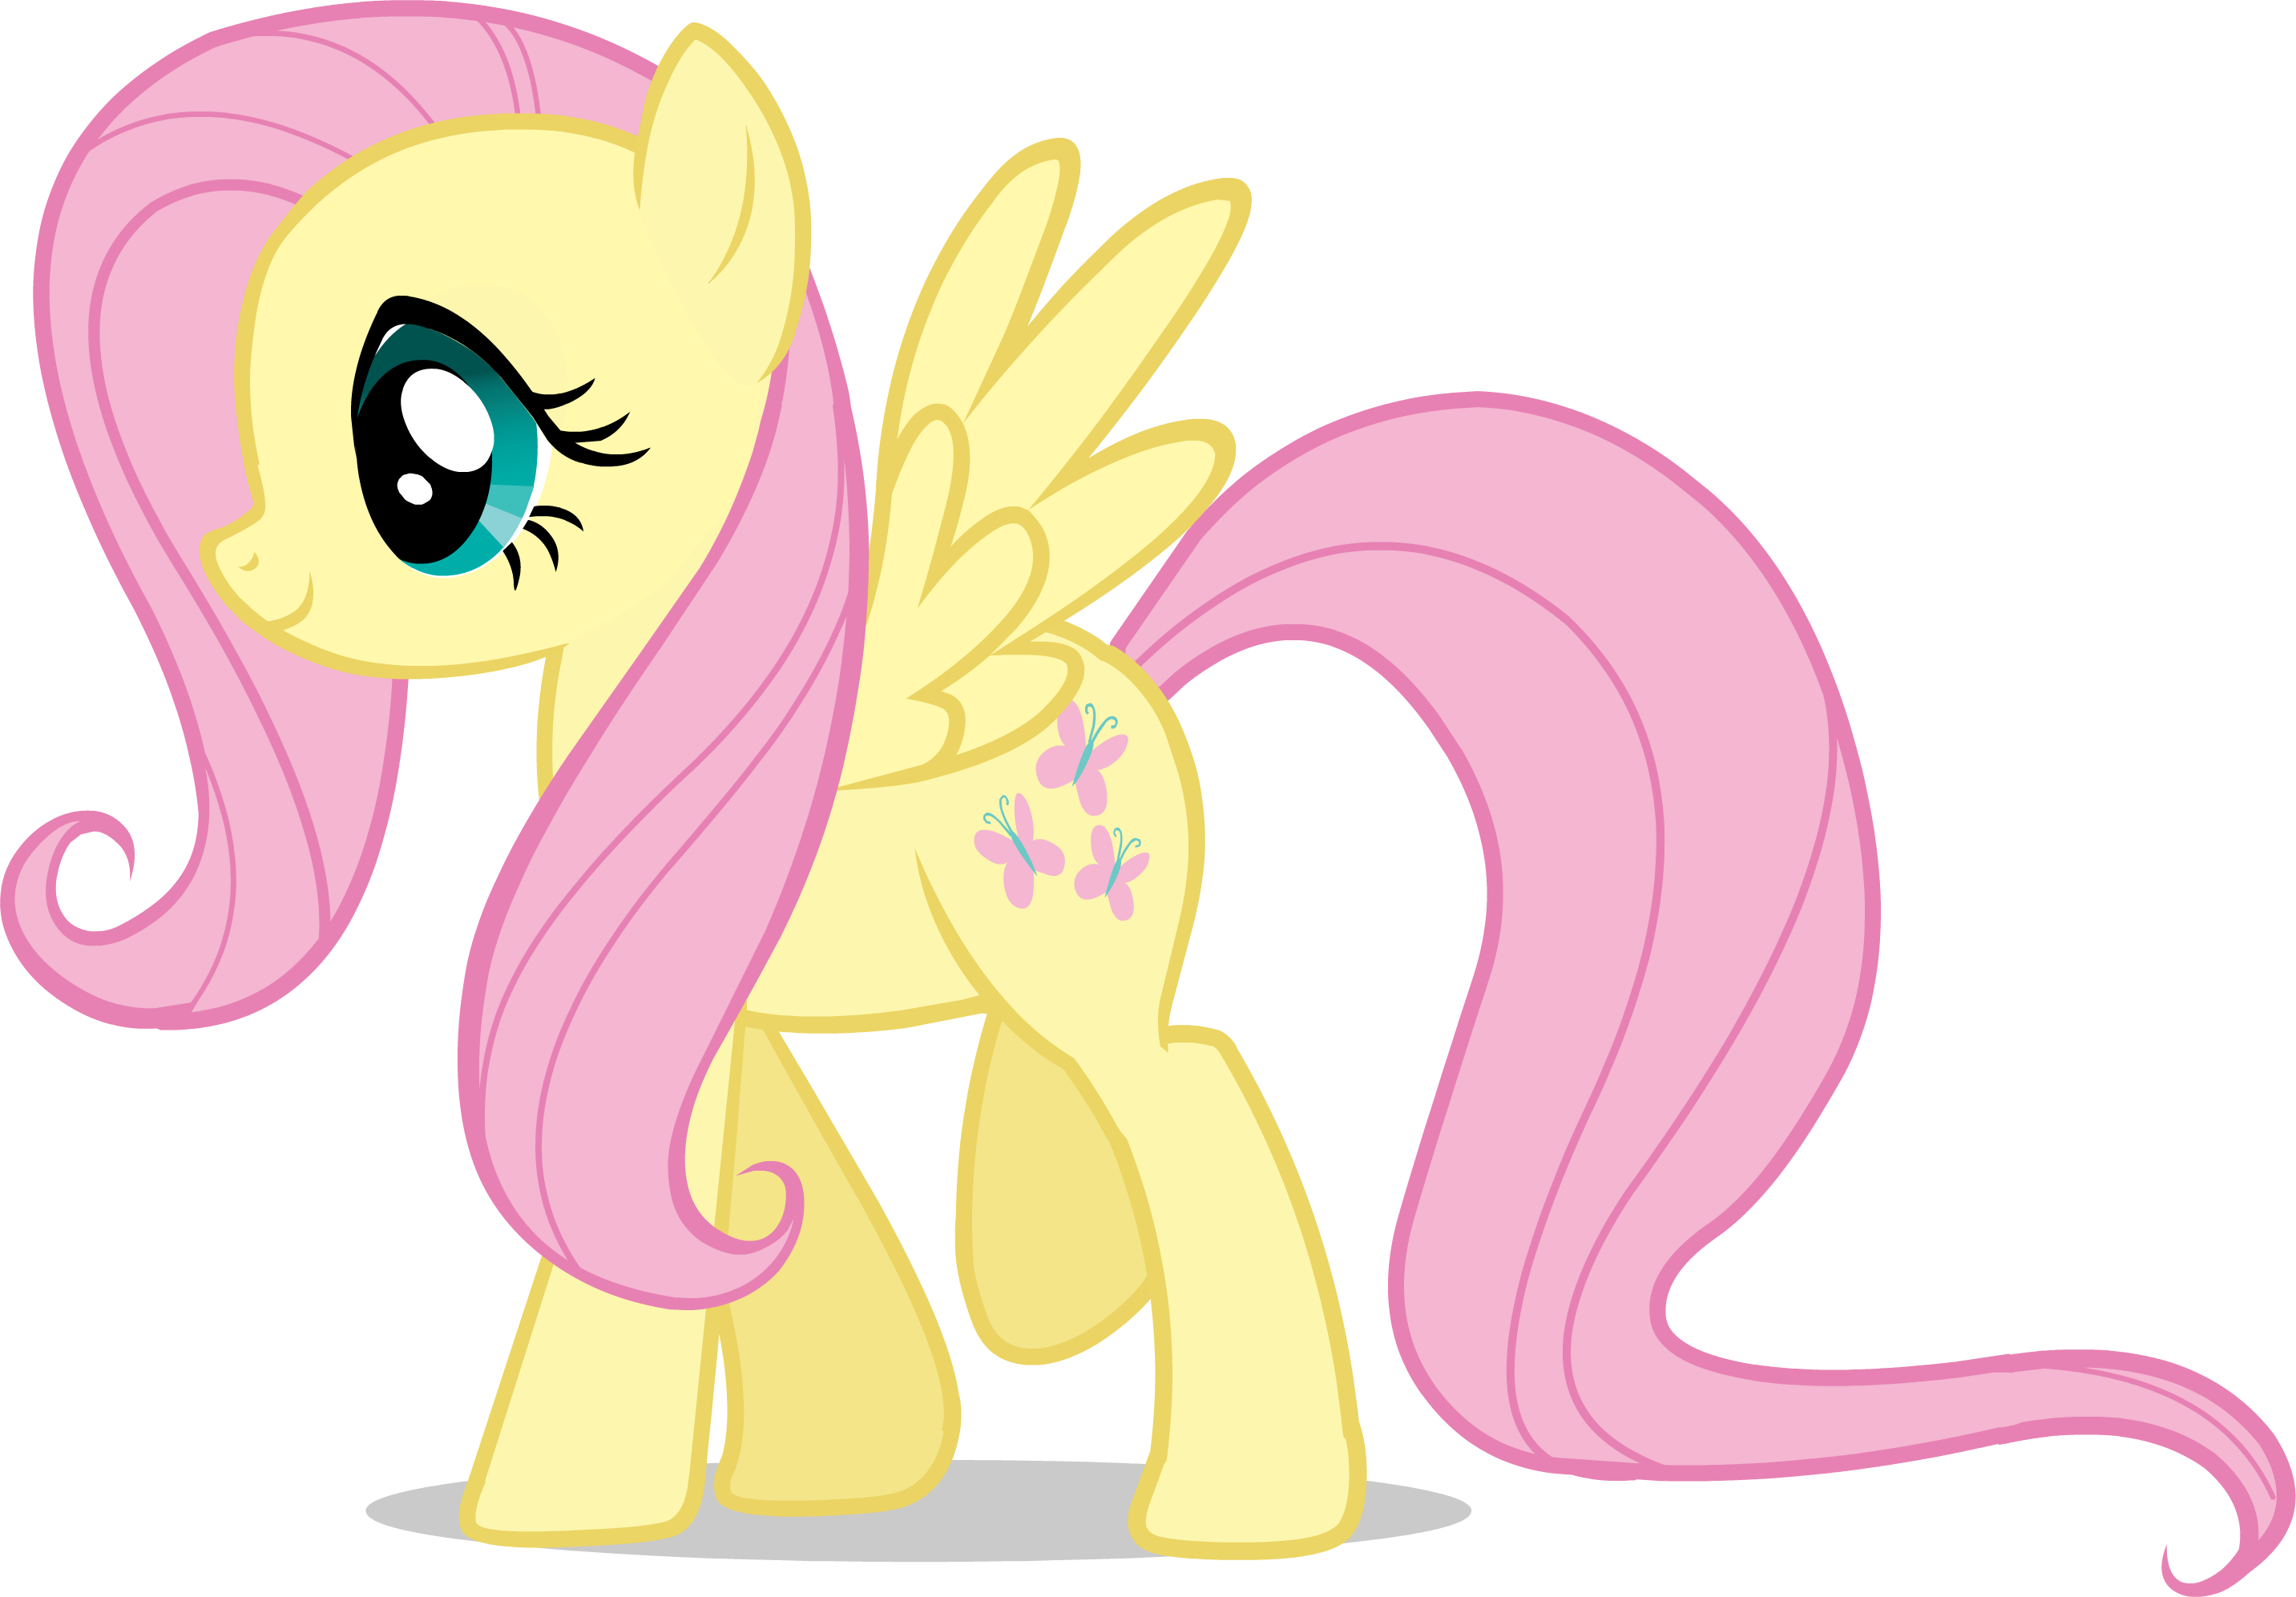 AiP_Fluttershy.png